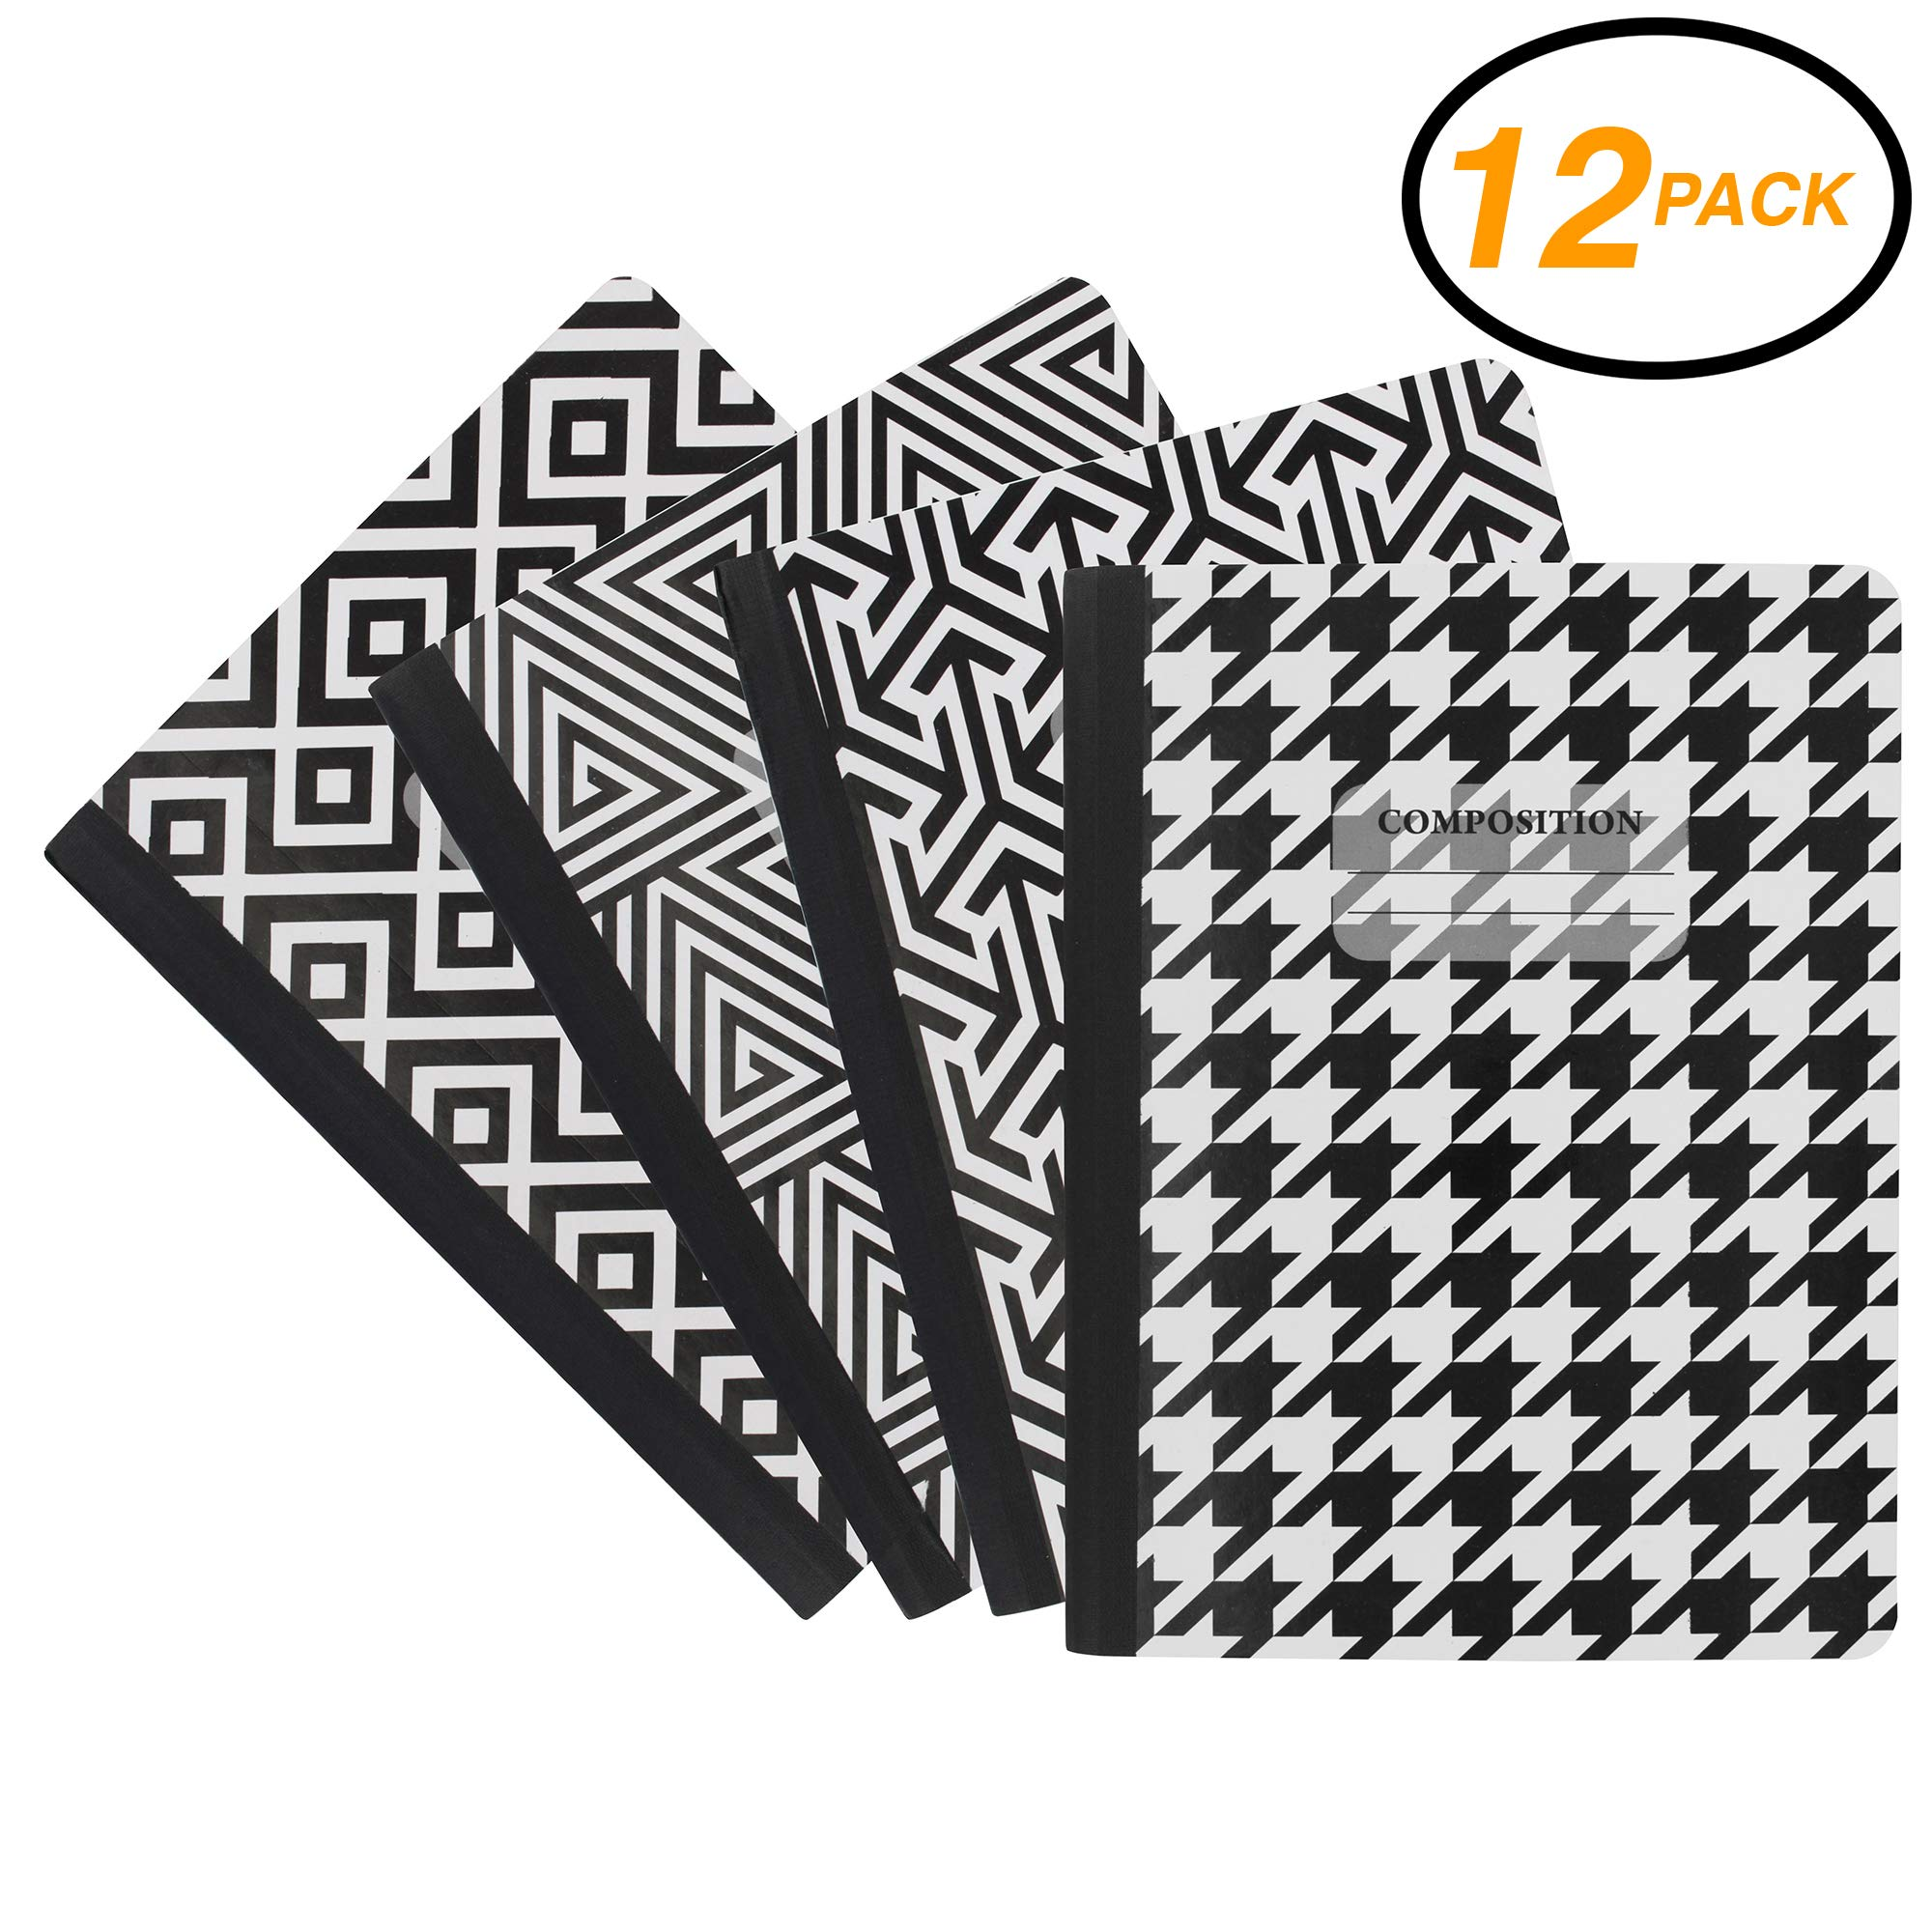 Emraw Black & White 4 Fashion Styles Cover Composition Book with 100 Sheets of Wide Ruled White Paper - Set Includes All Style Covers (12 Pack)